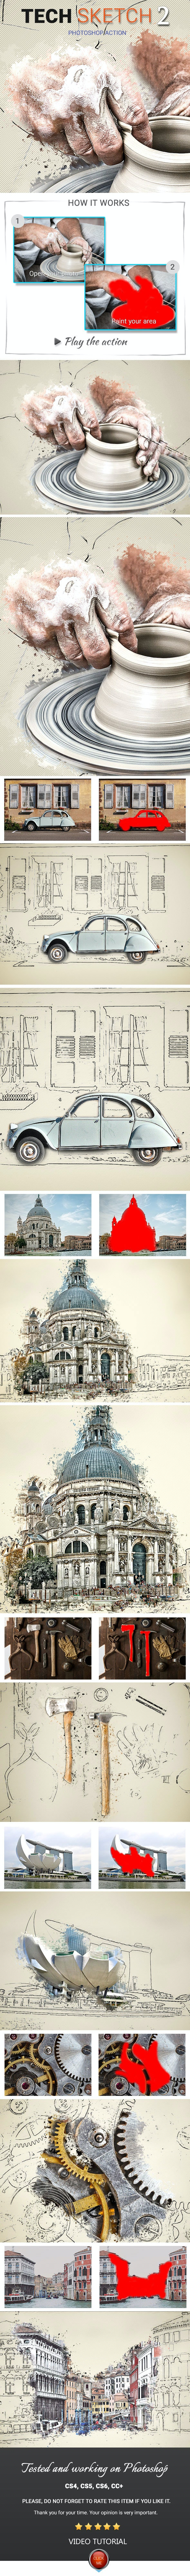 Tech Sketch2 Photoshop Action - Photo Effects Actions